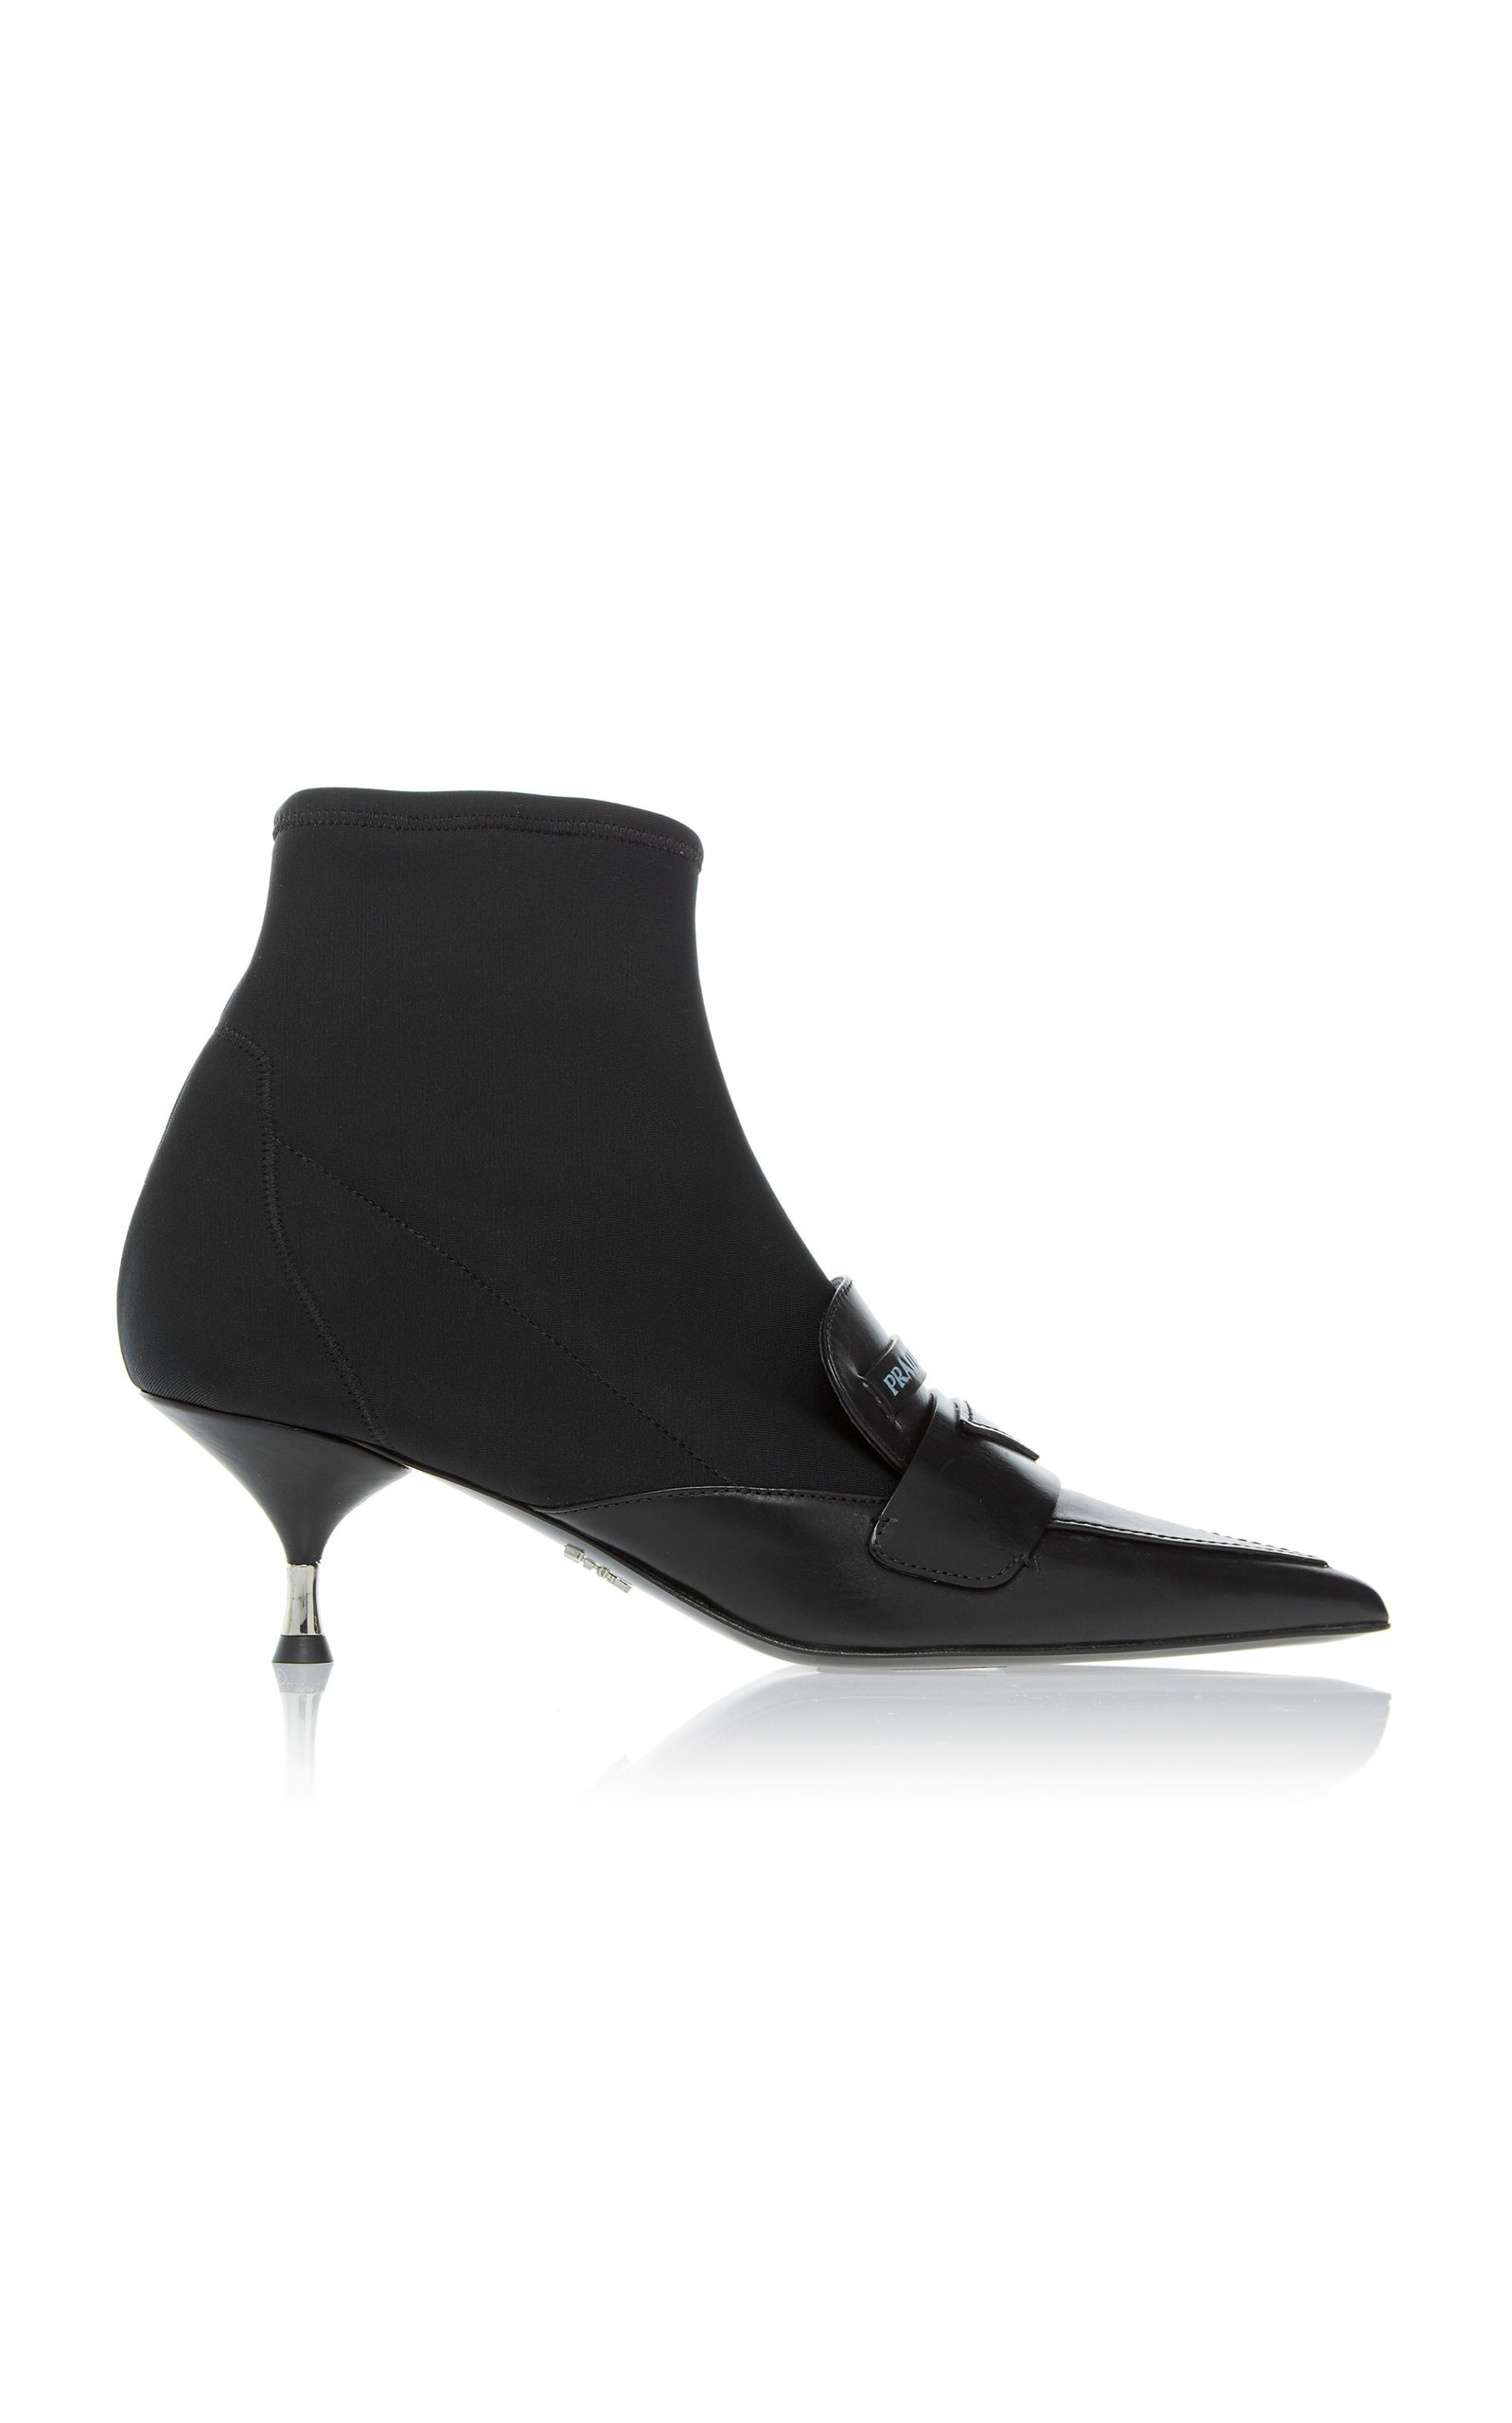 Half Sock Leather Loafer Boot By Prada